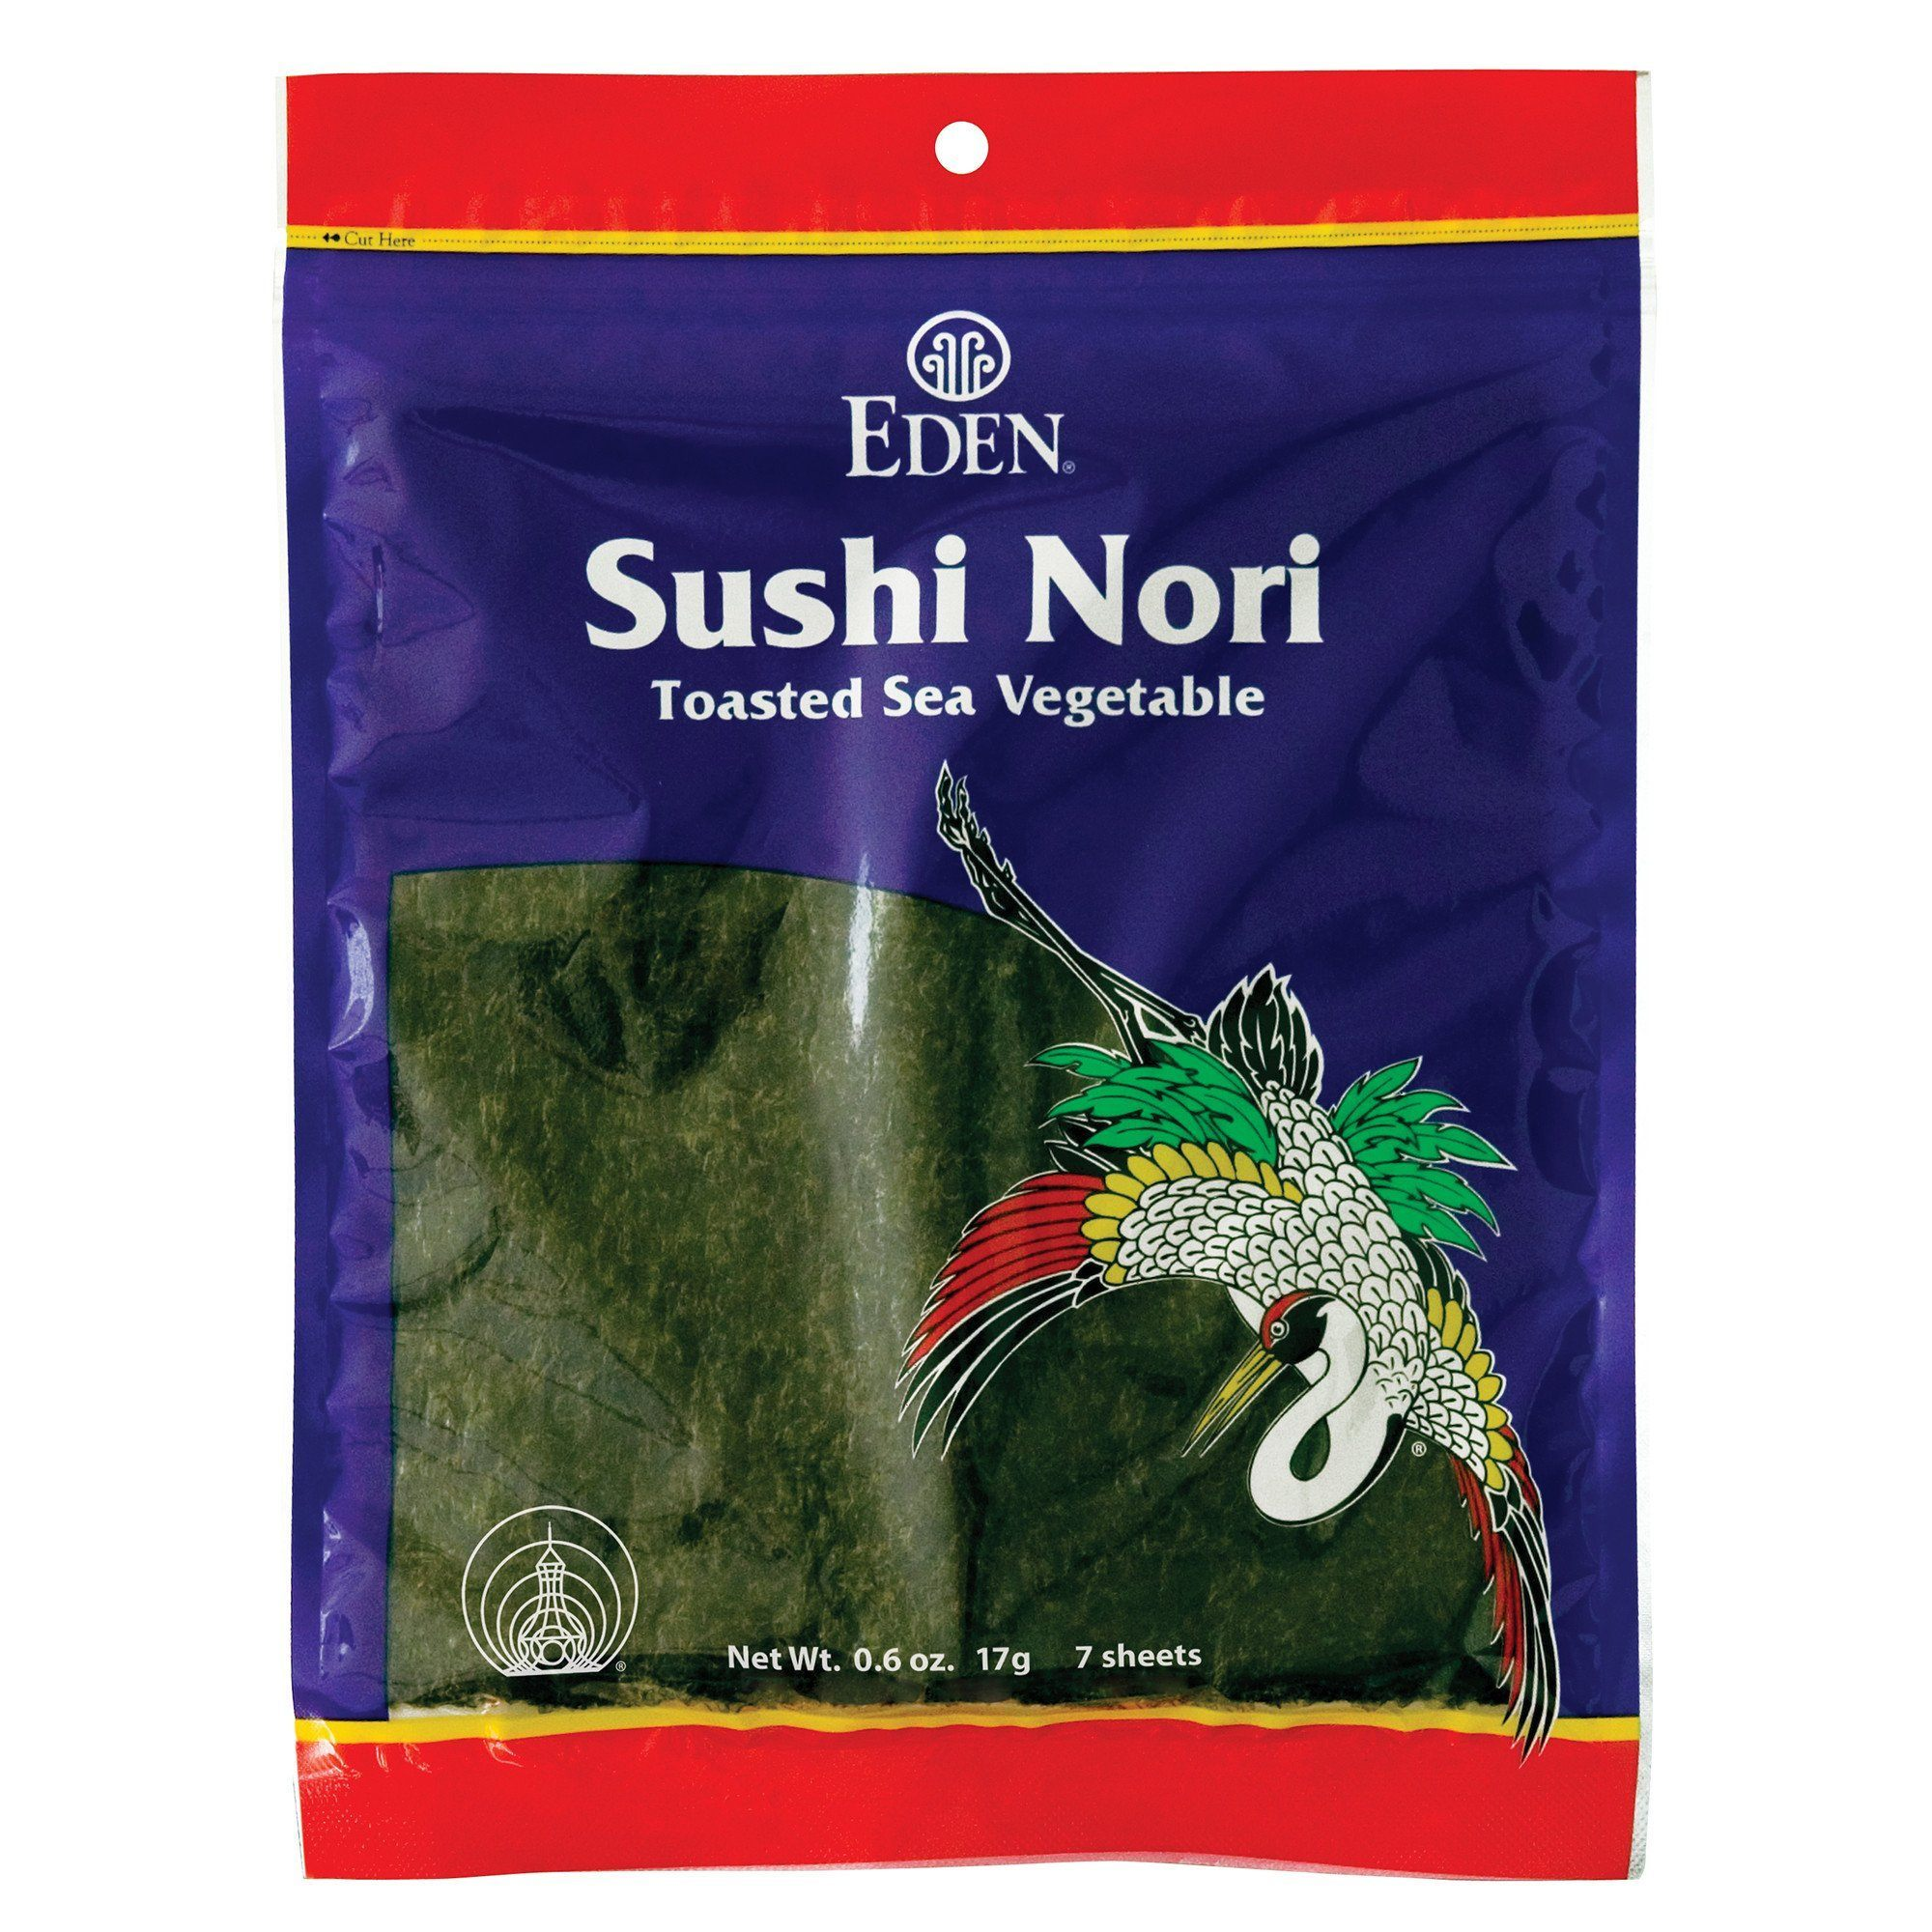 Food & Drink - Eden - Sushi Nori Sea Vegetable, 17g